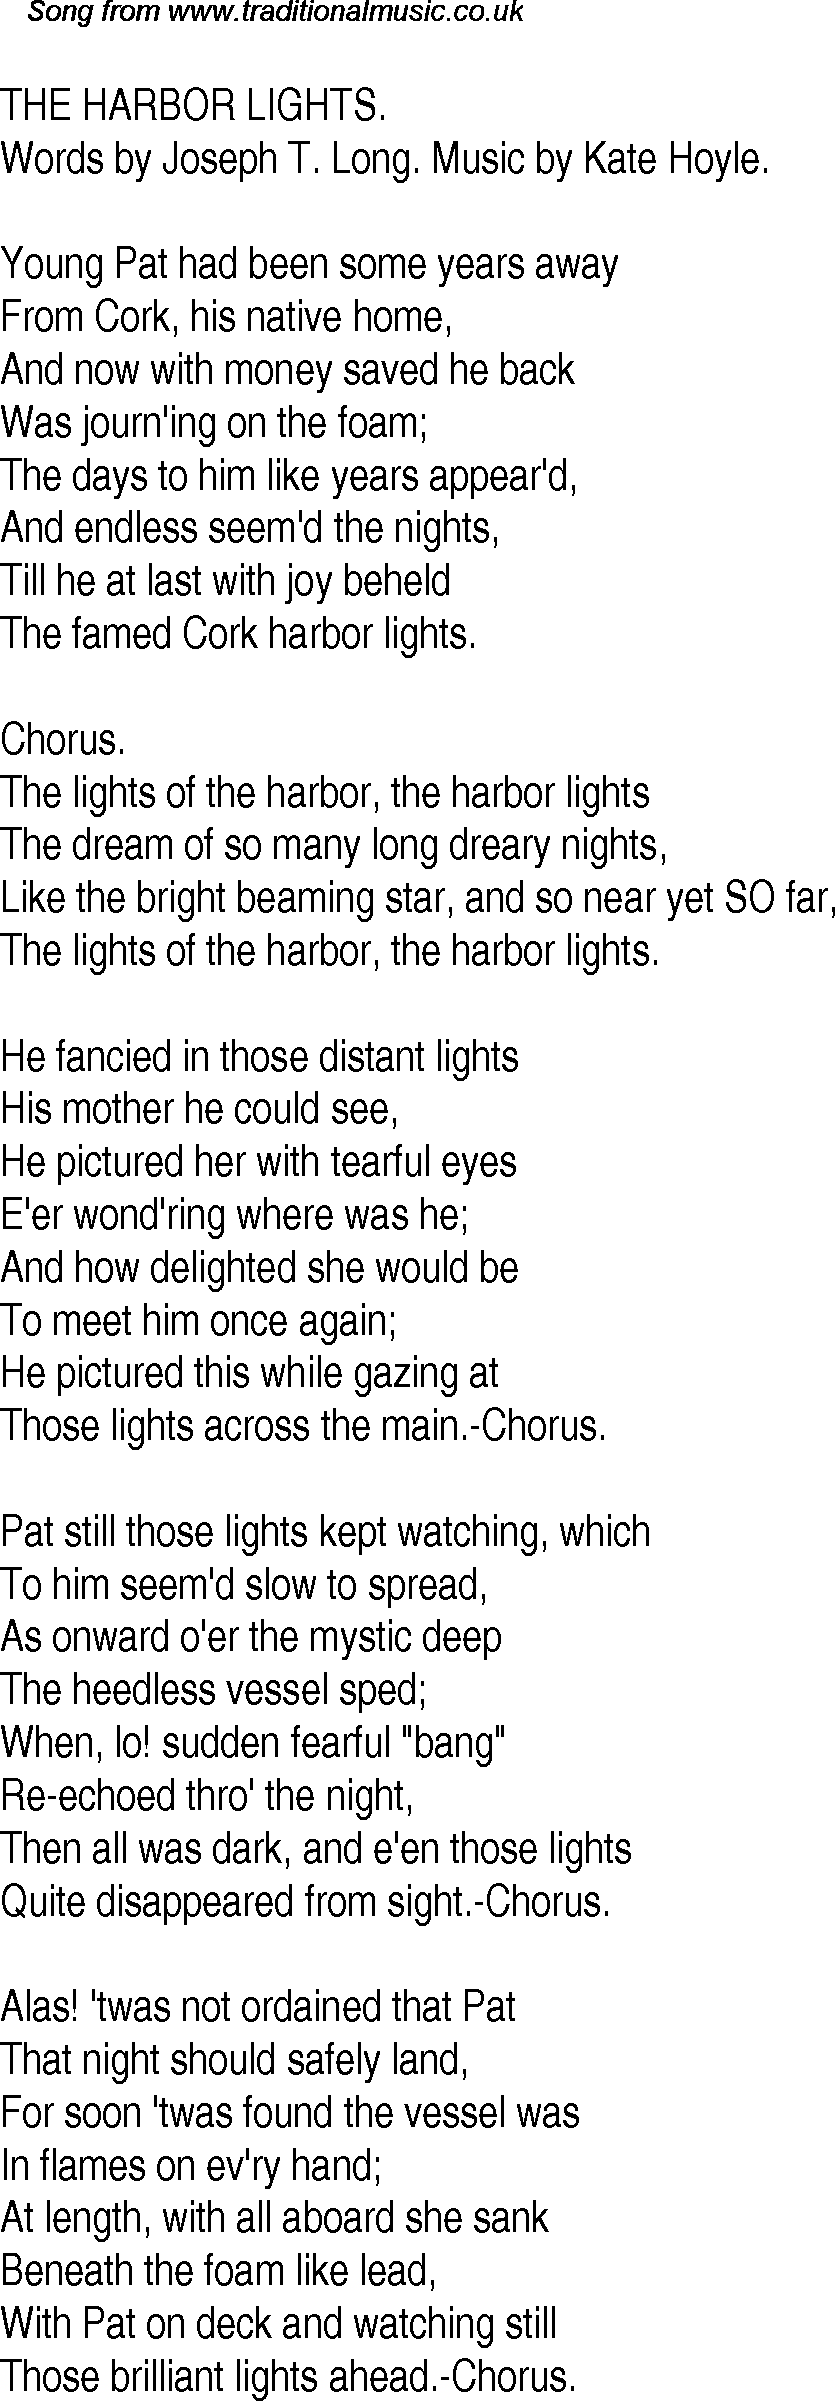 Old Time Song Lyrics for 21 The Harbor Lights